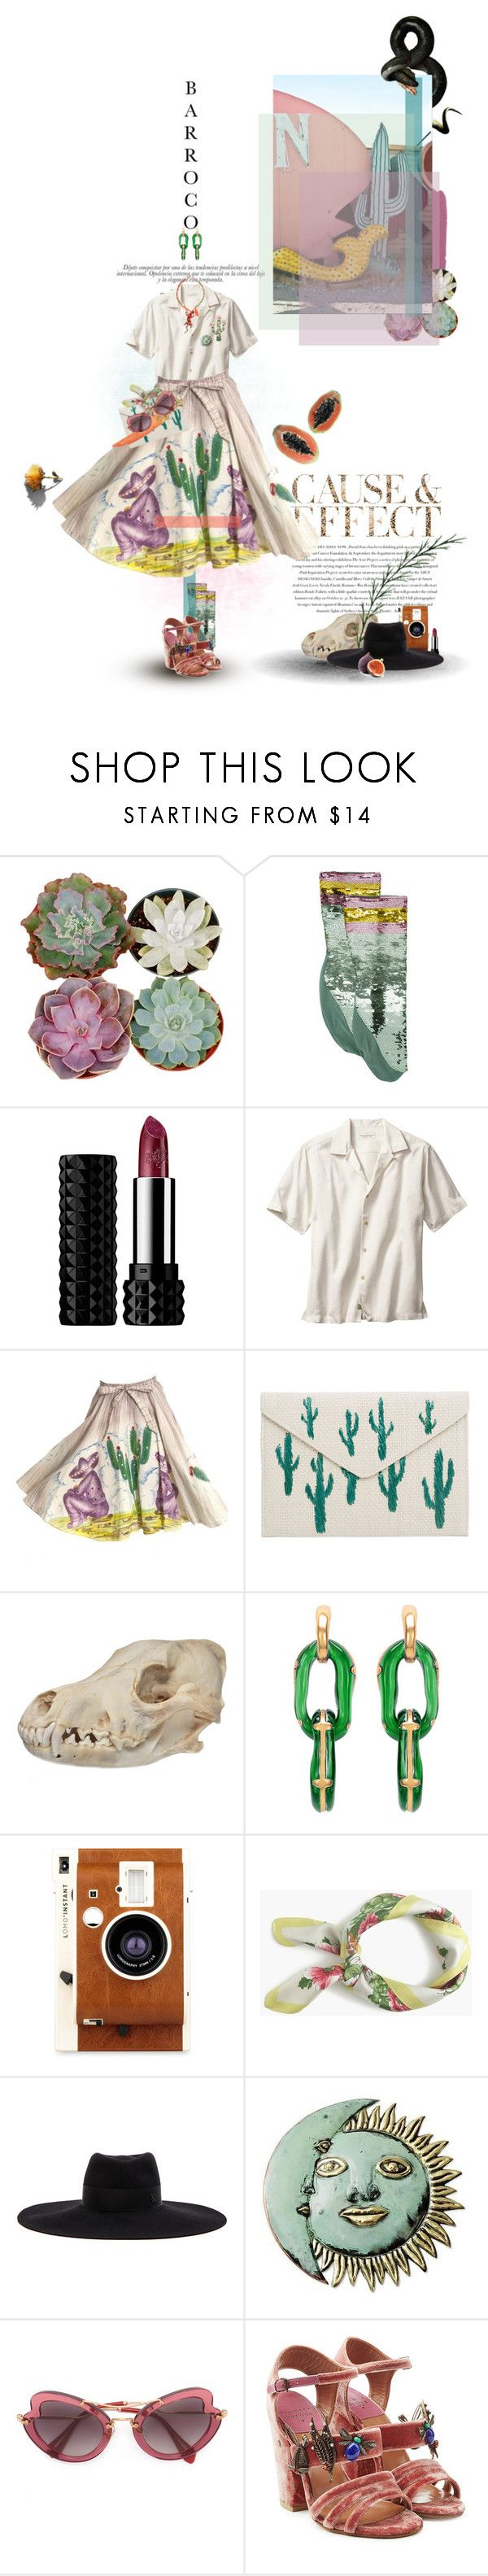 """Lashes out when threatened, or offended. Same thing."" by ducktape ❤ liked on Polyvore featuring Gucci, Envi:, Kat Von D, MANGO, Oscar de la Renta, LØMO, J.Crew, Chanel, Maison Michel and NOVICA"